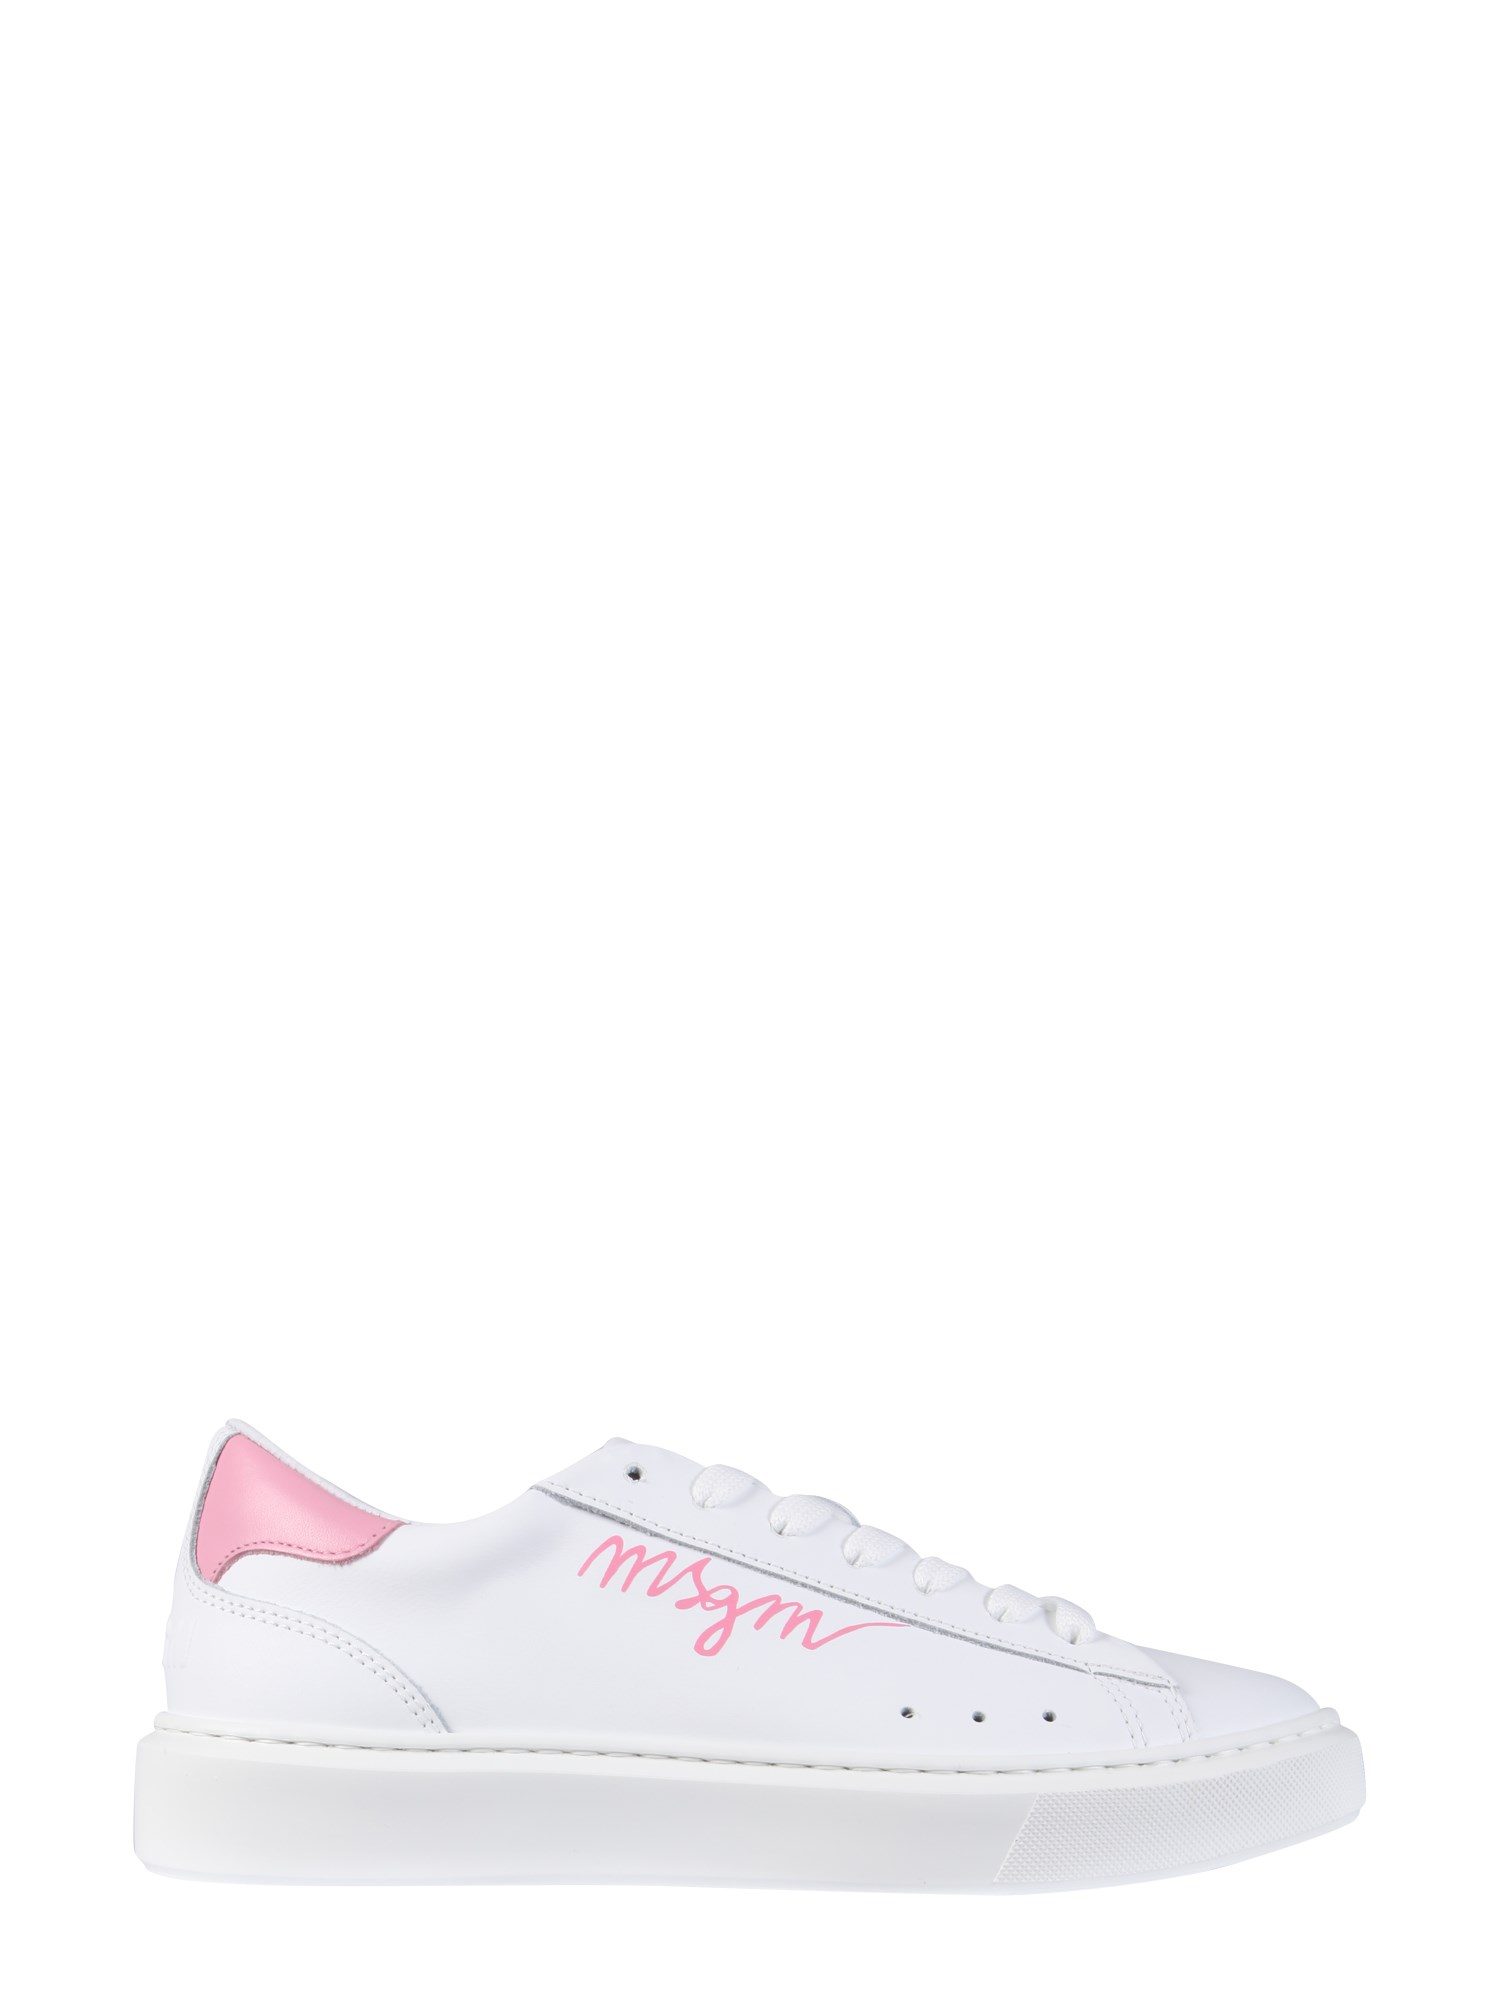 Msgm SNEAKERS WITH LOGO